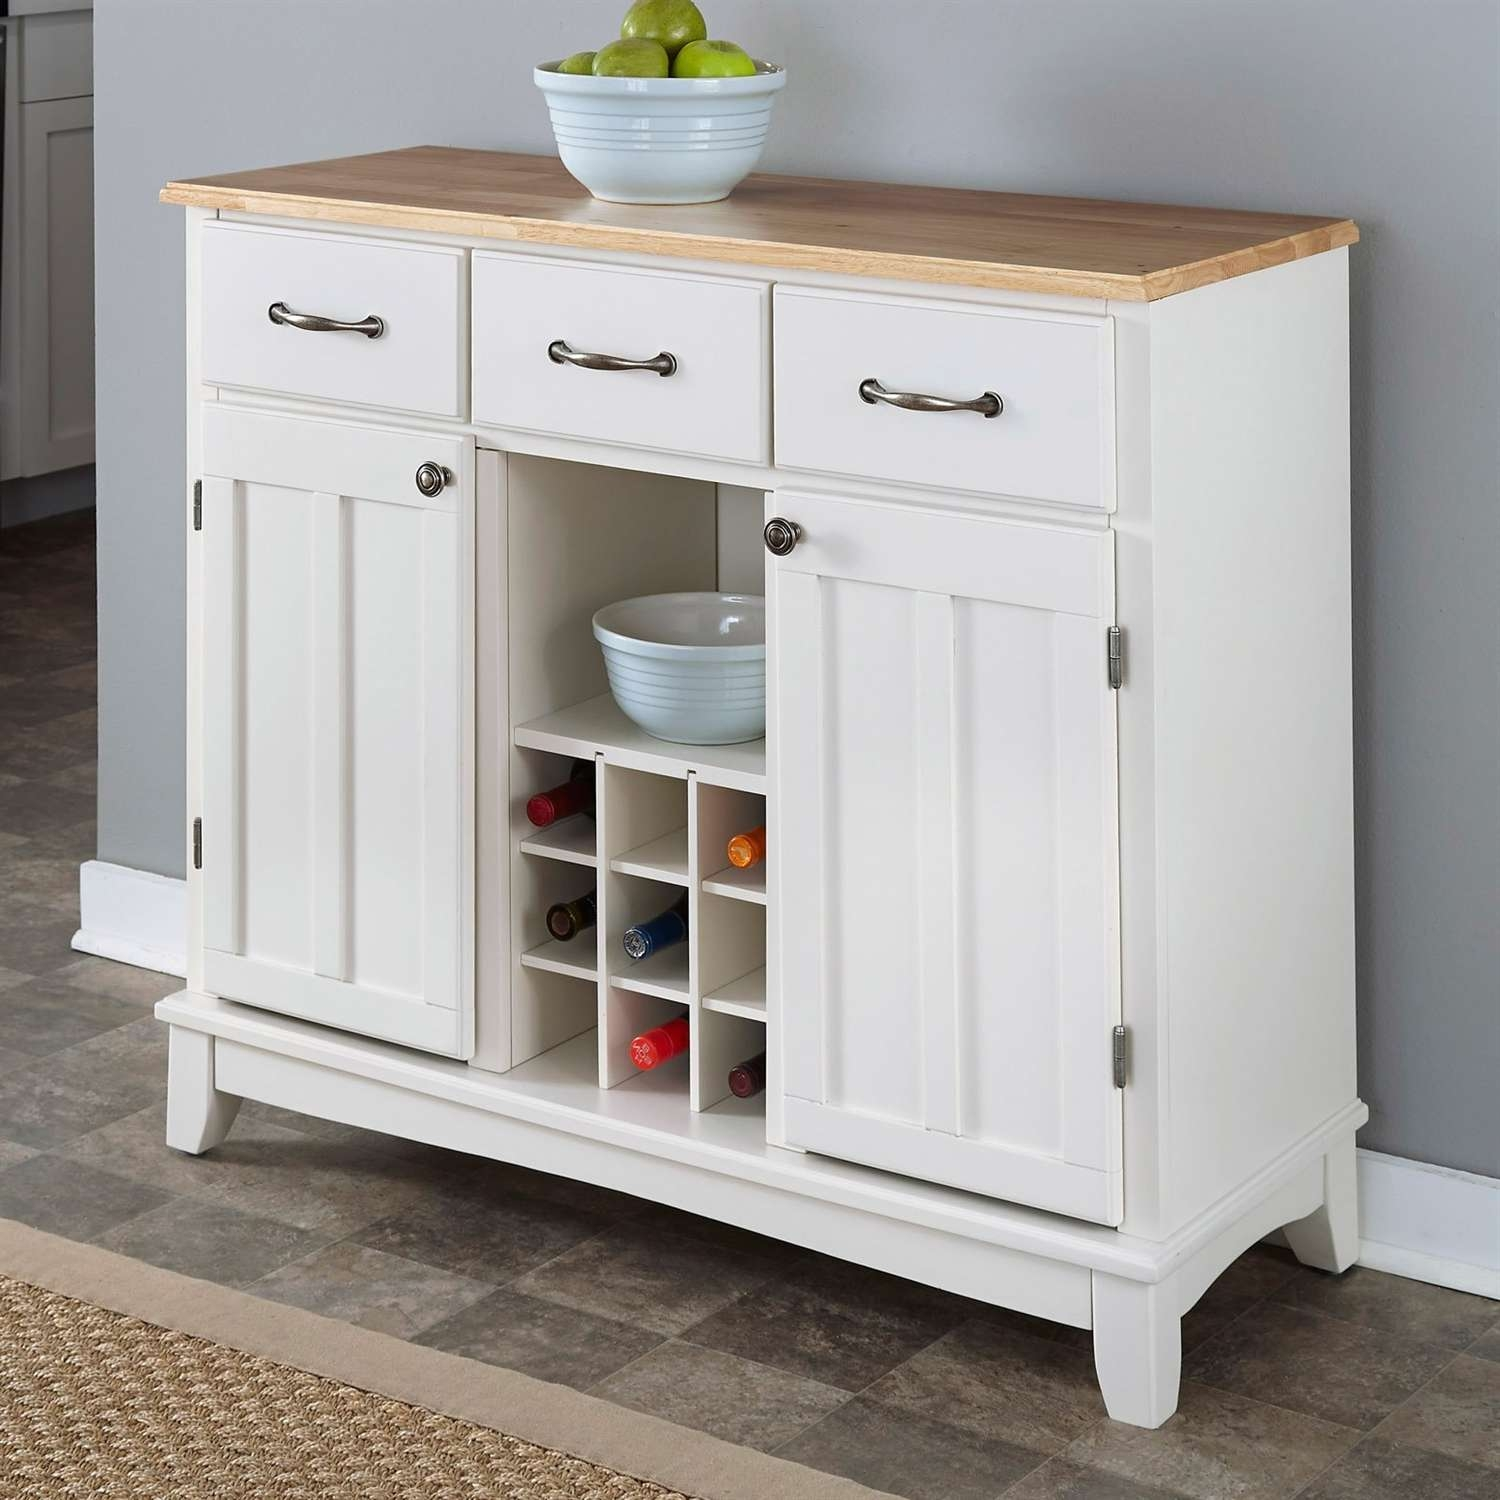 Sideboards & Buffets Throughout White Sideboards Cabinets (View 17 of 20)